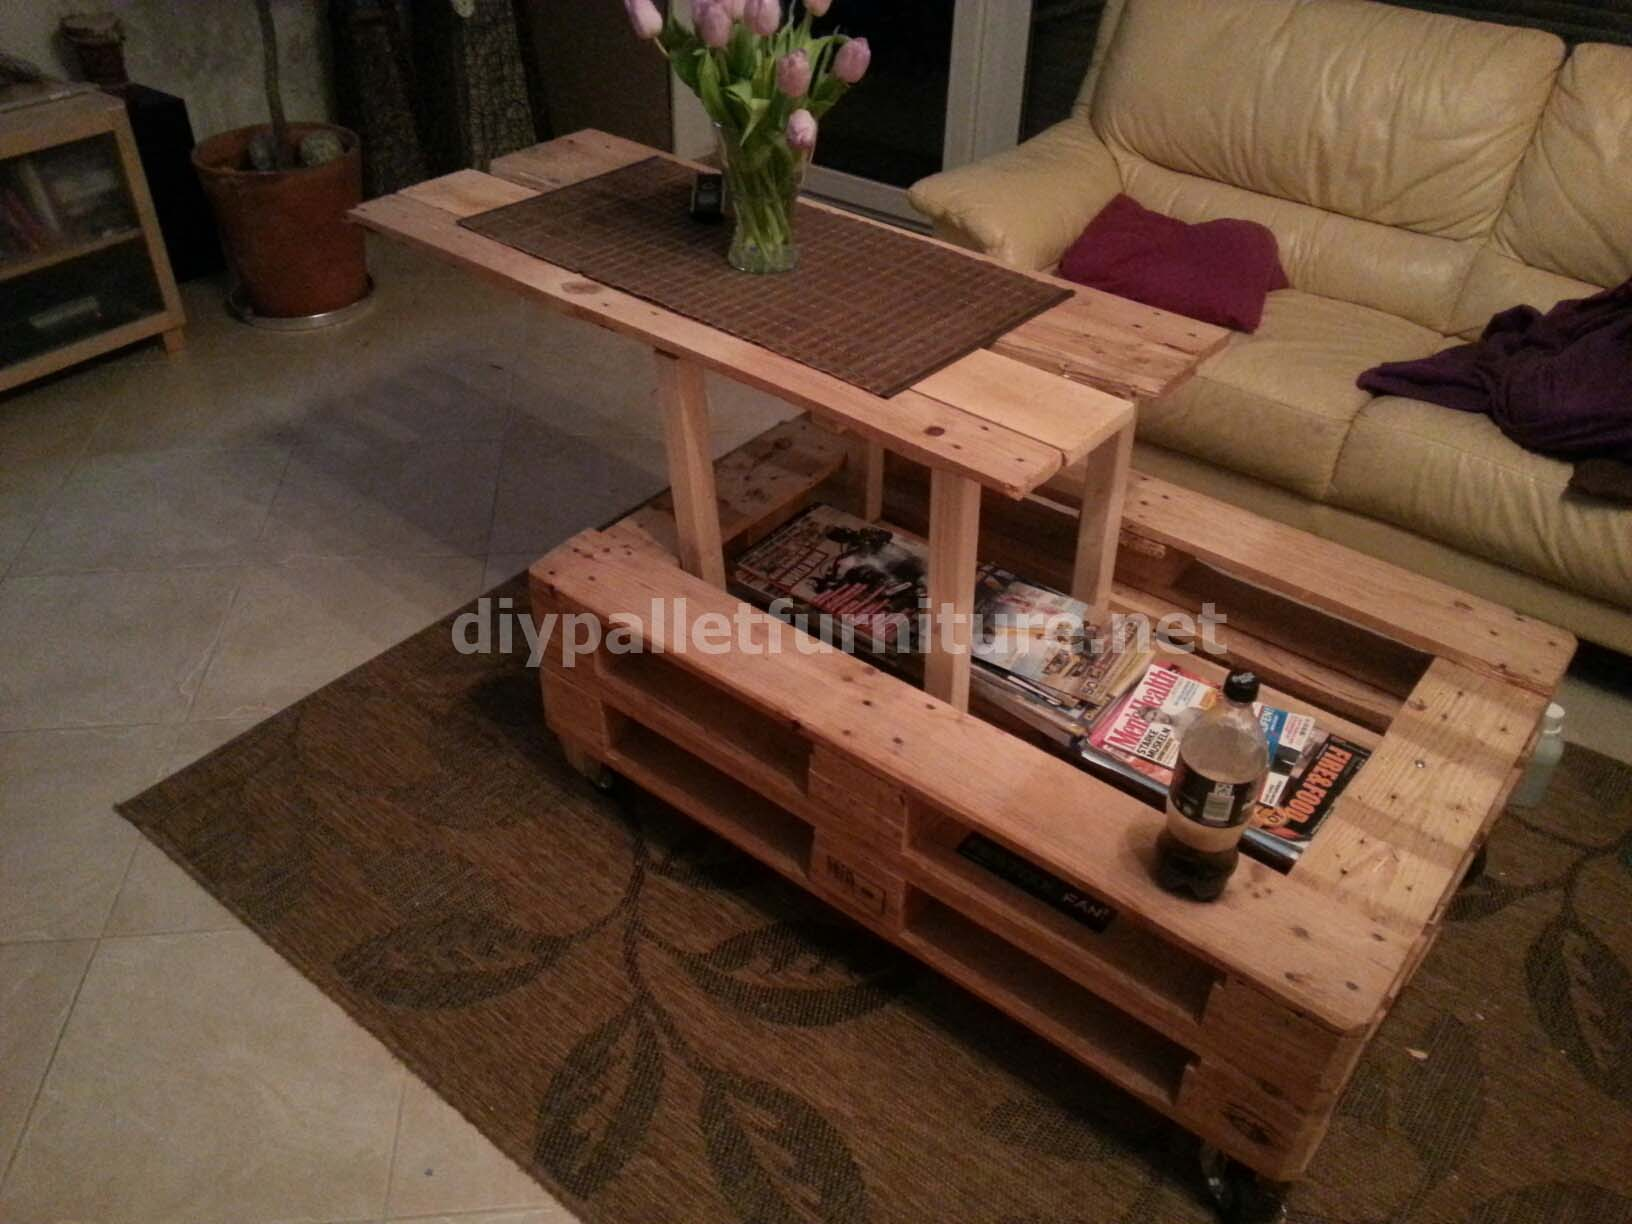 pneumatic pallet tablediy pallet furniture diy pallet furniture. Black Bedroom Furniture Sets. Home Design Ideas